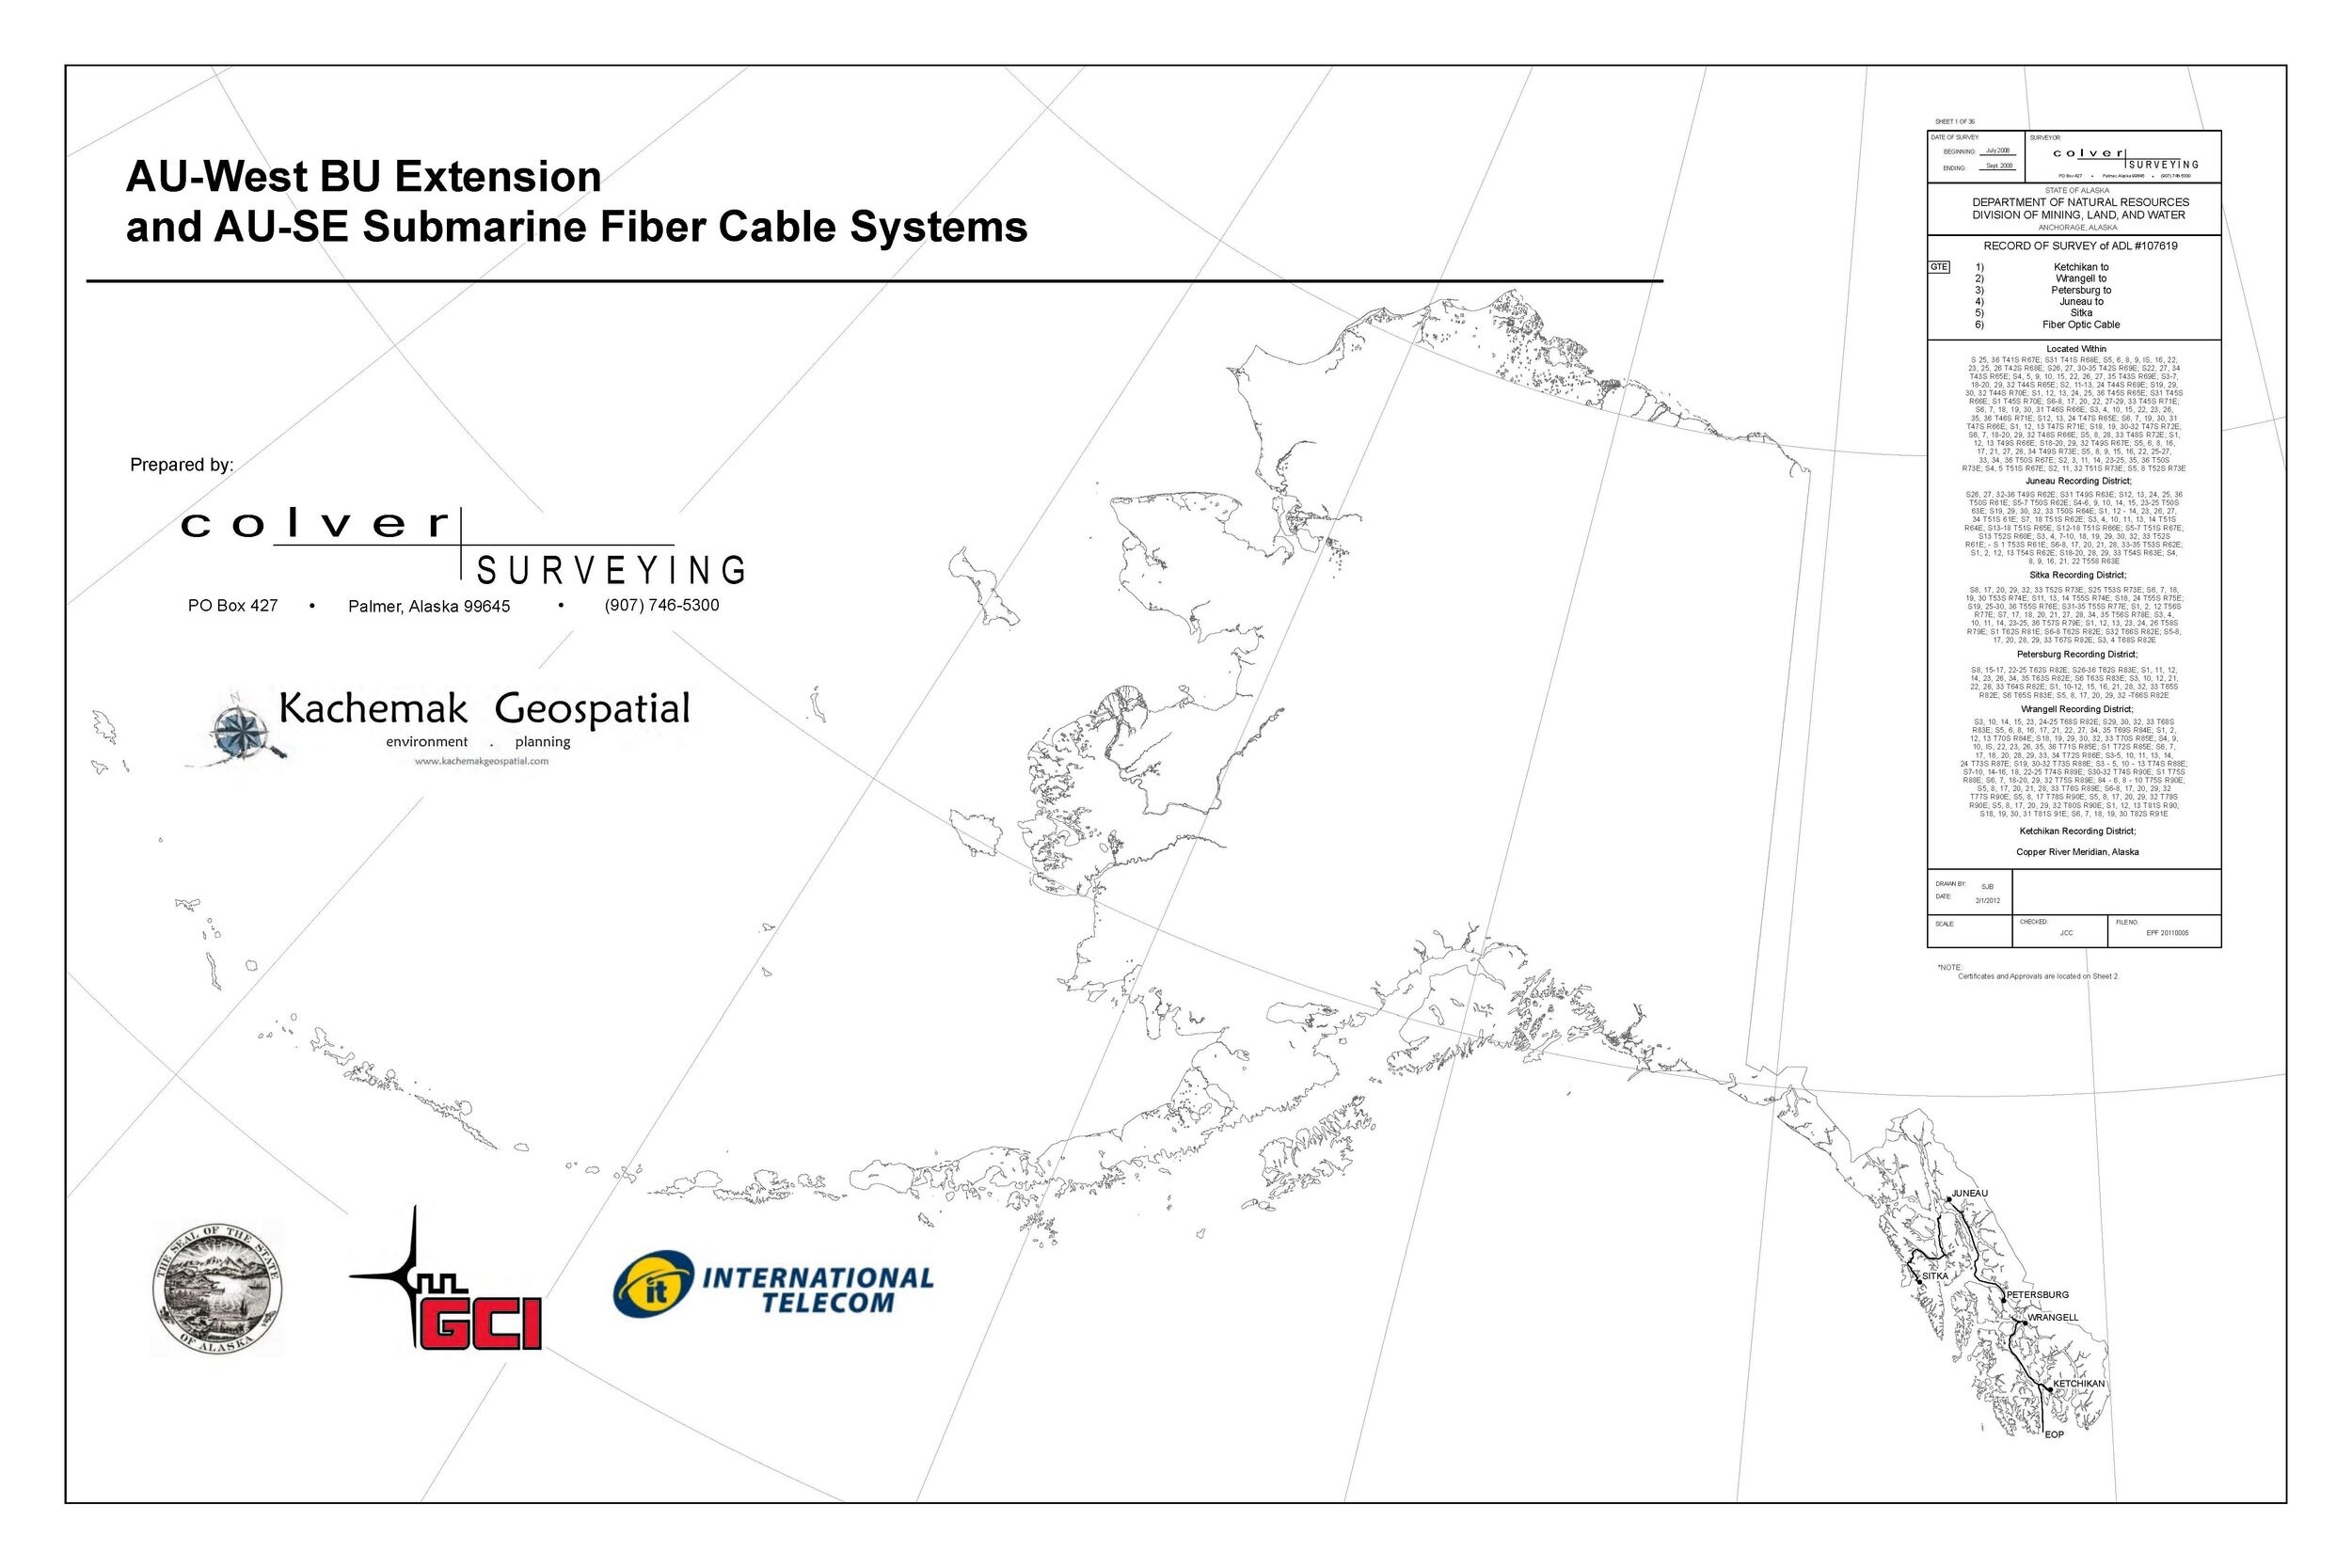 Kachemak Geospatial has partnered with GCI to digitize the fiber optic cable system throughout Alaska.